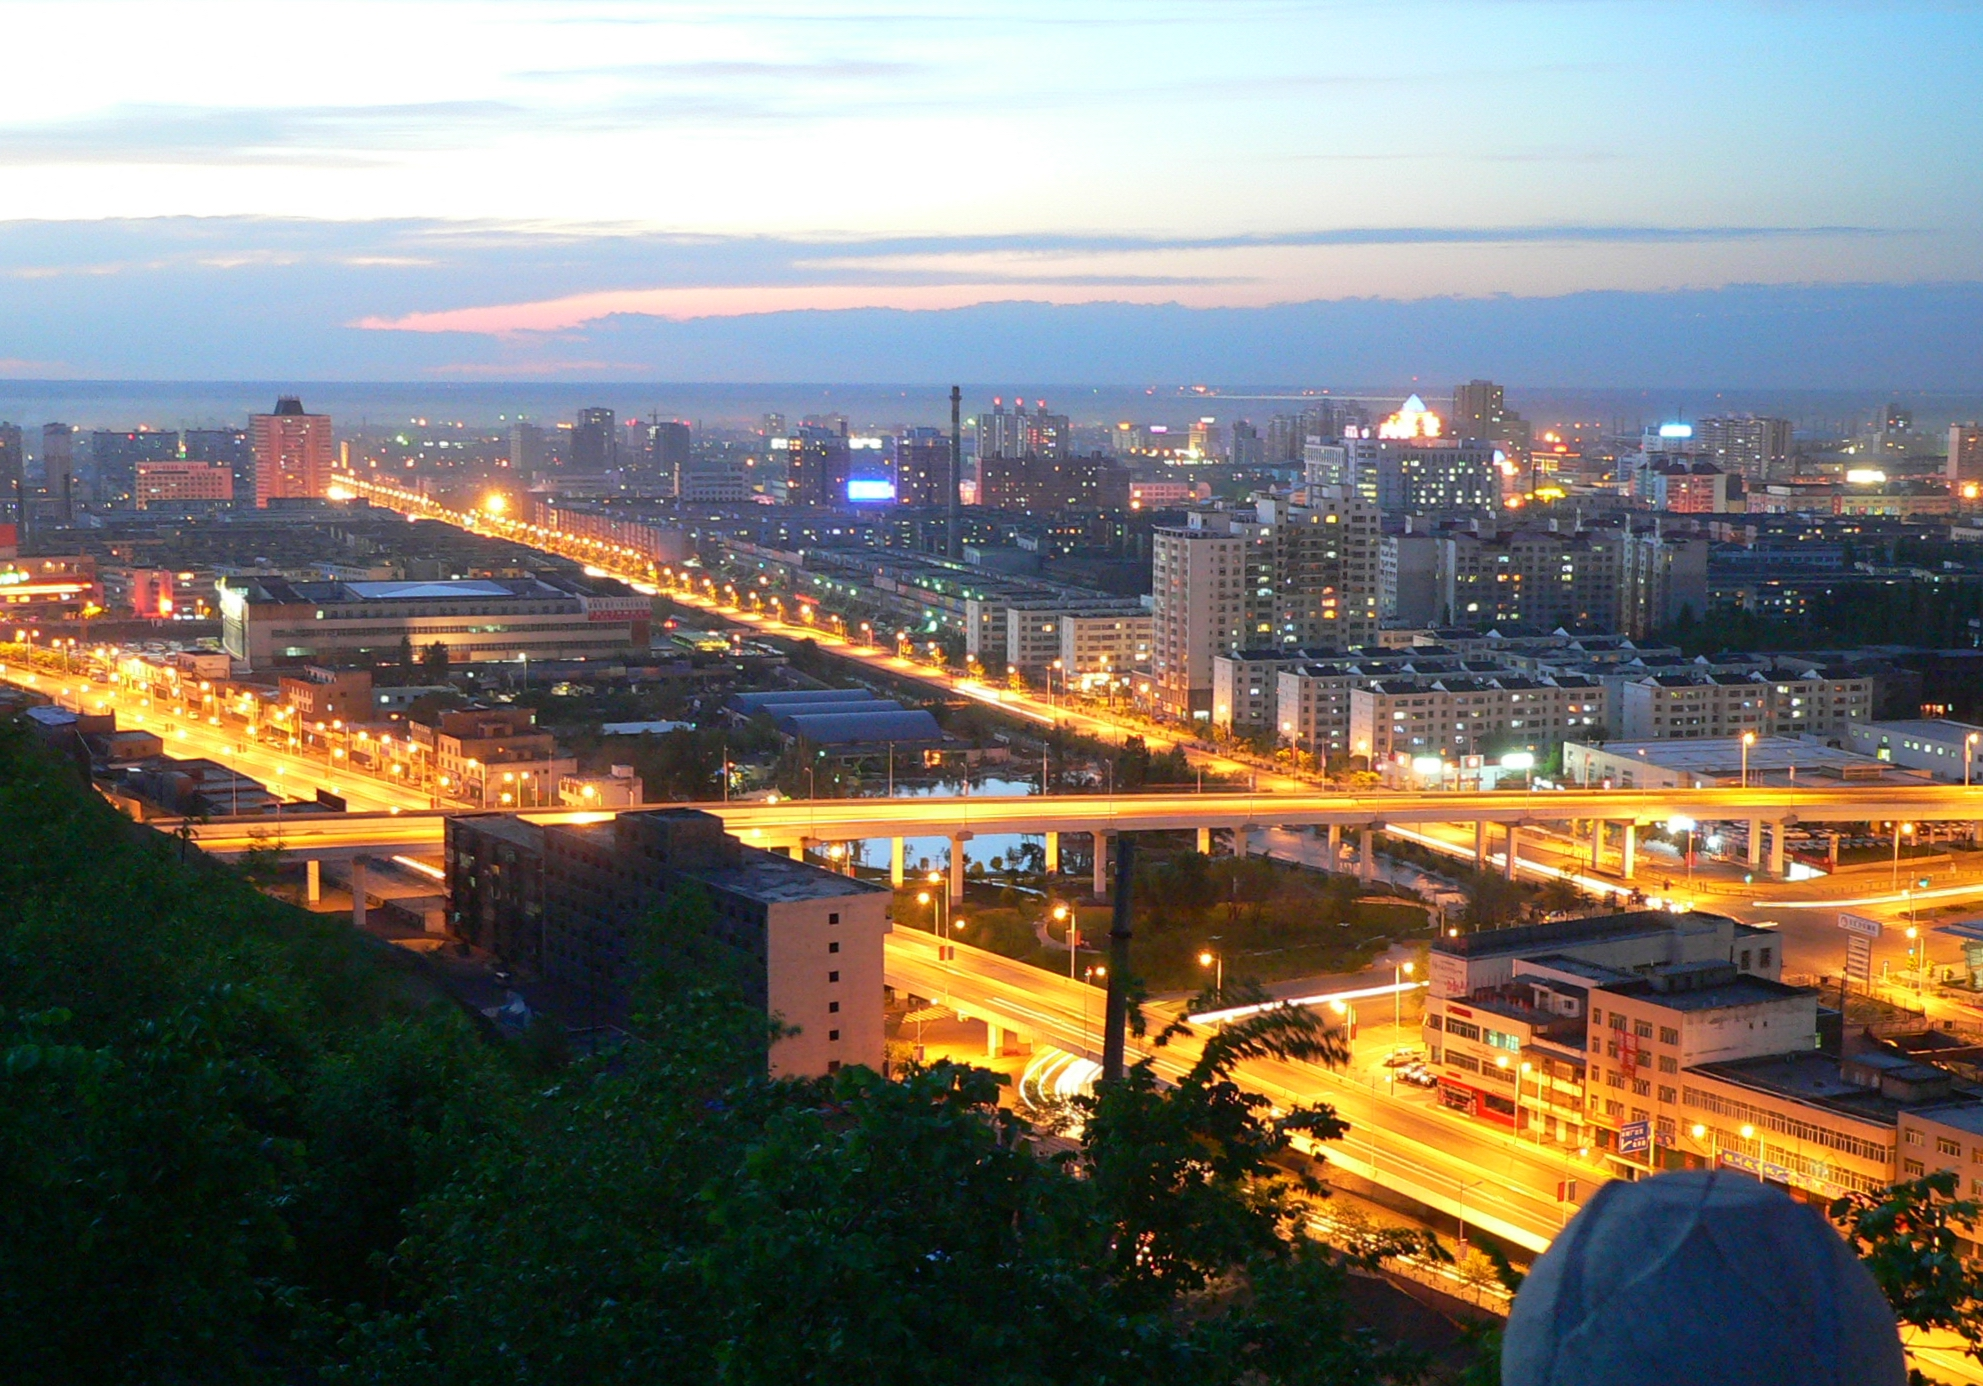 Outer_Ring_Road_of_Urumqi.jpg